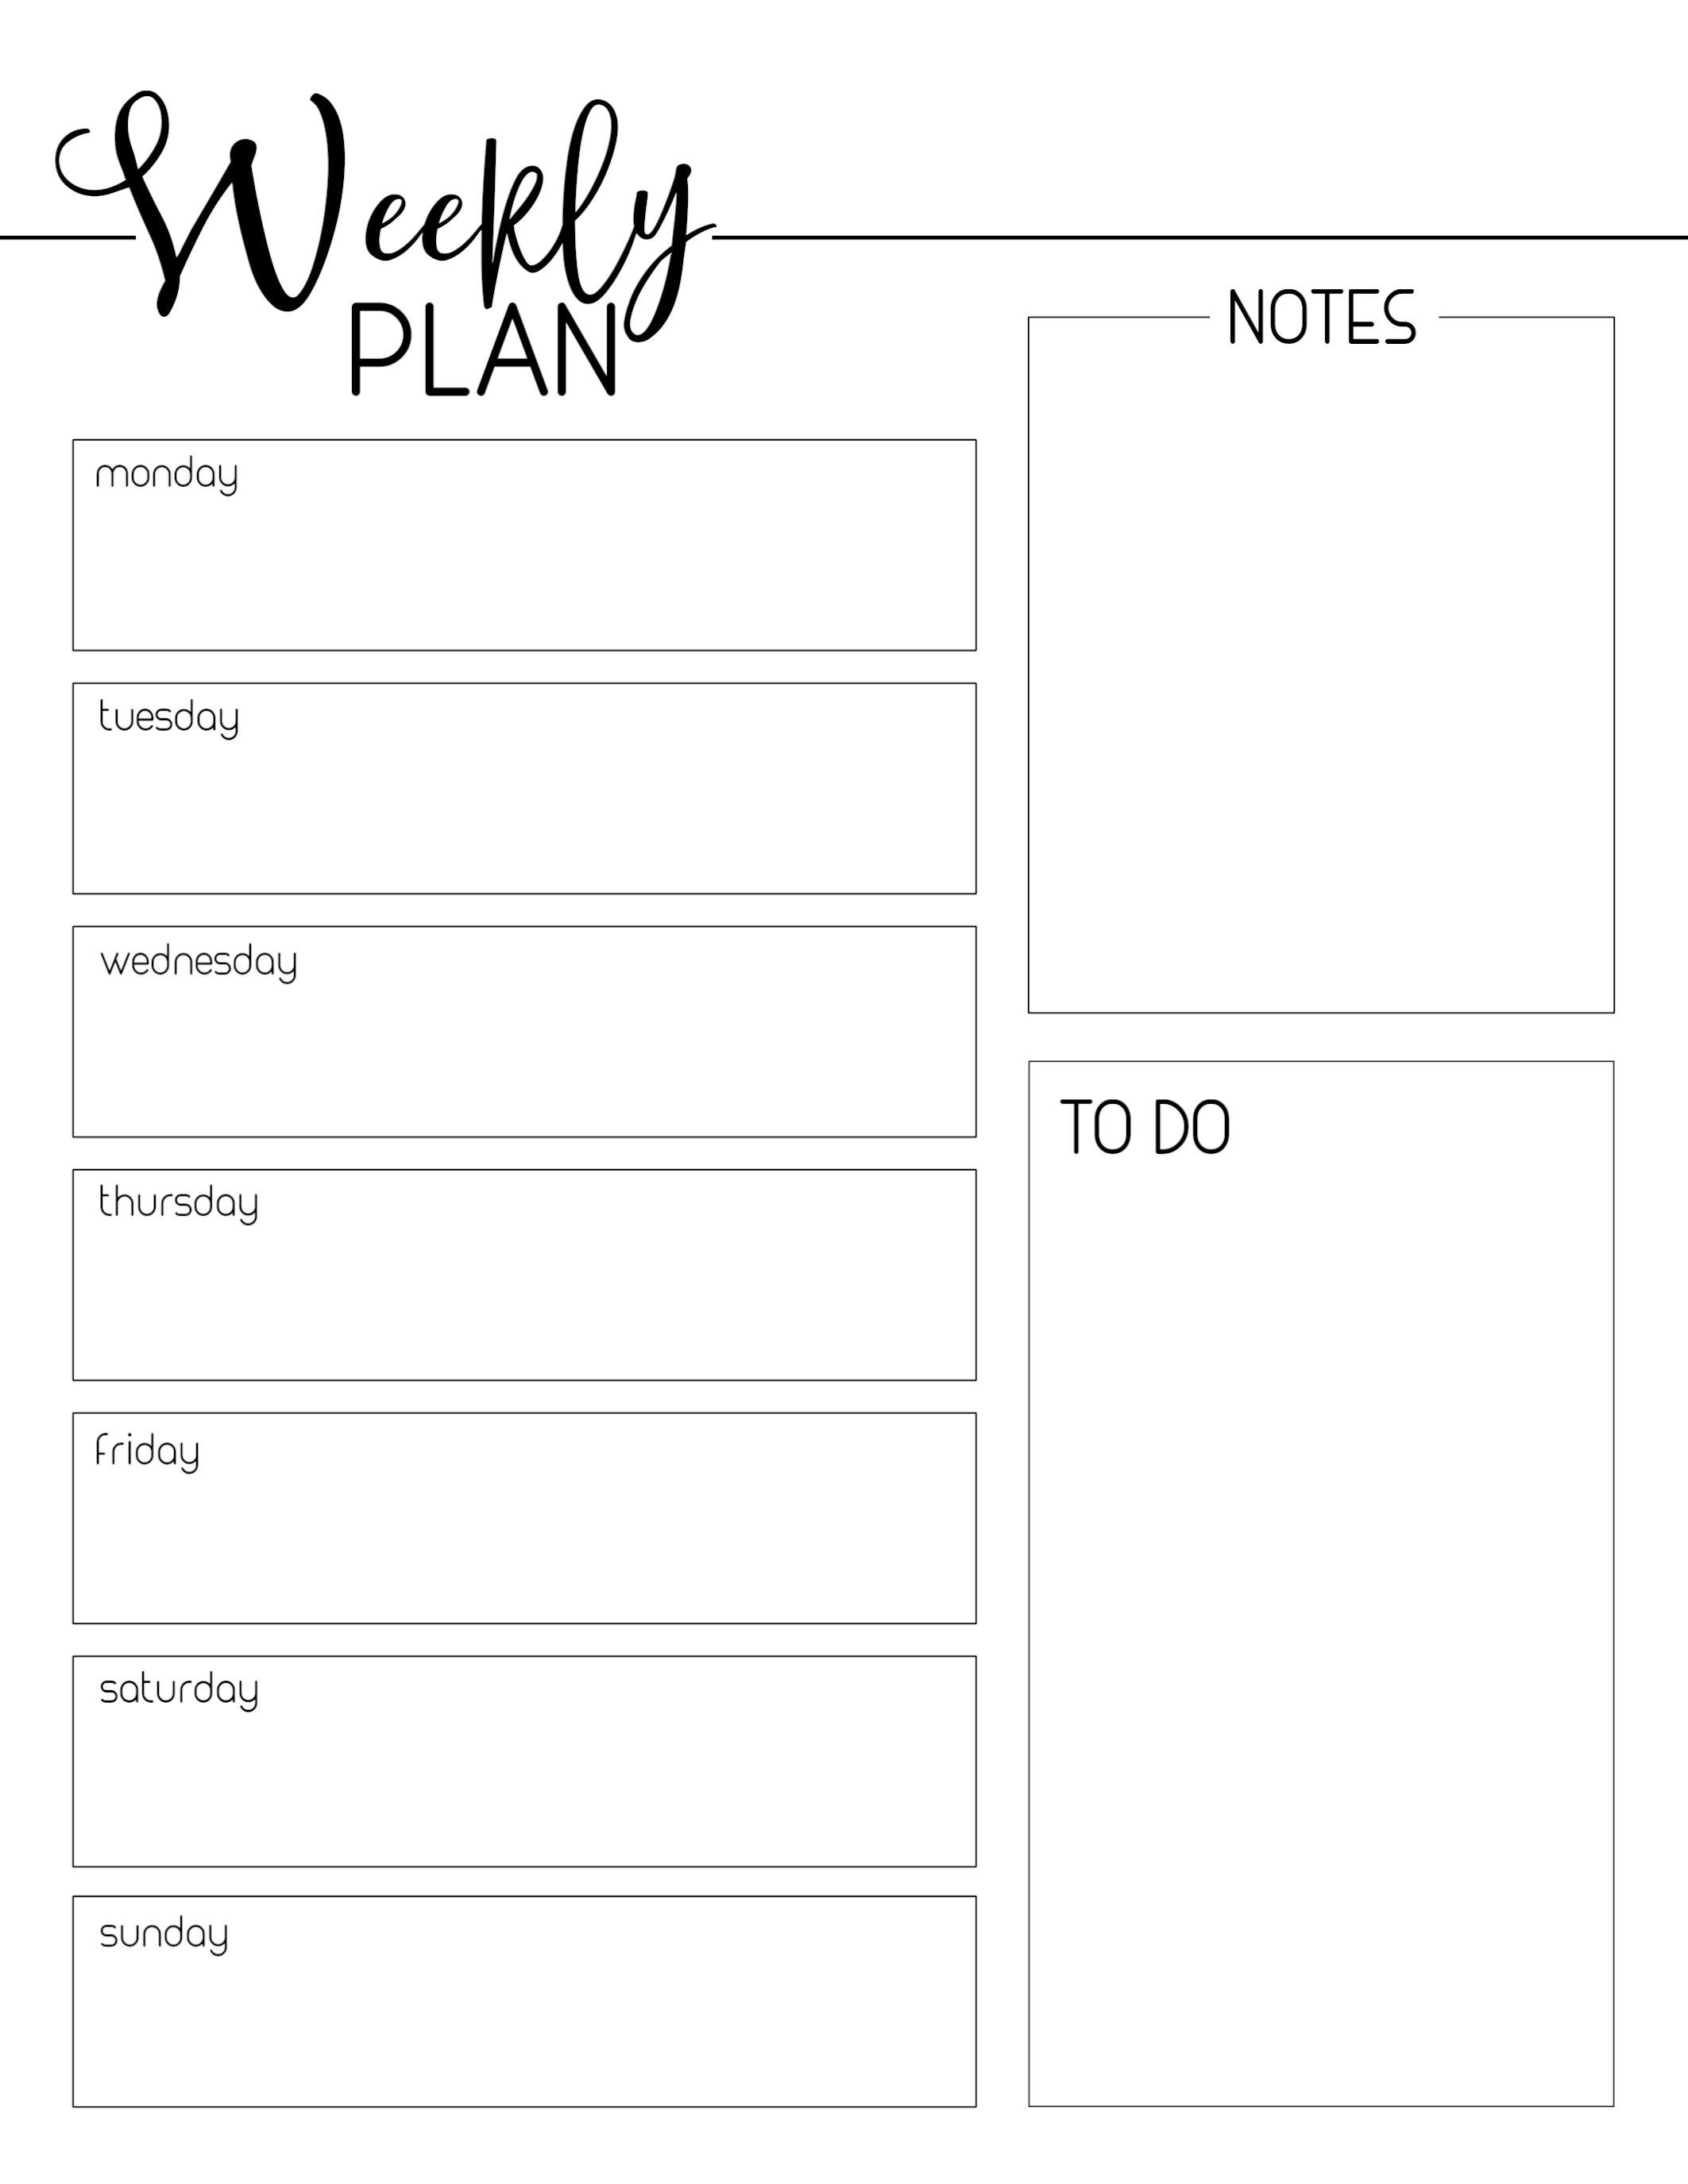 photo about Weekly Planner Printables named Weekly Planner Template Cost-free Printable - Paper Path Design and style